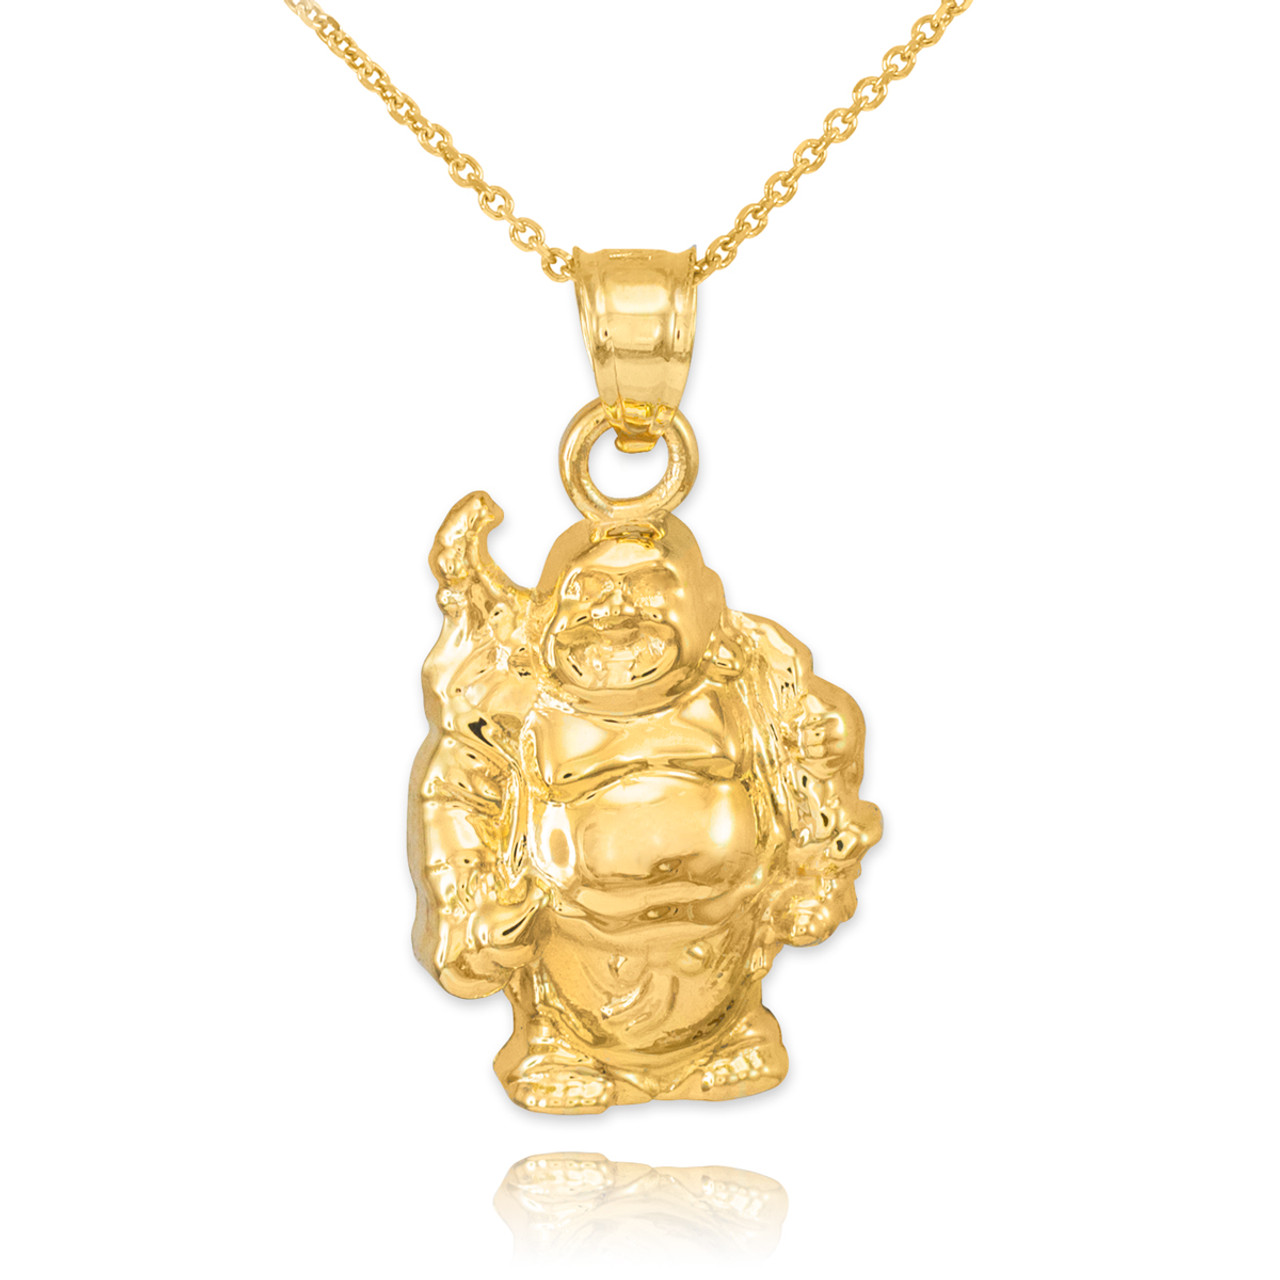 Gold laughing buddha pendant necklace buddha buddhist pendant gold laughing buddha pendant necklace aloadofball Image collections